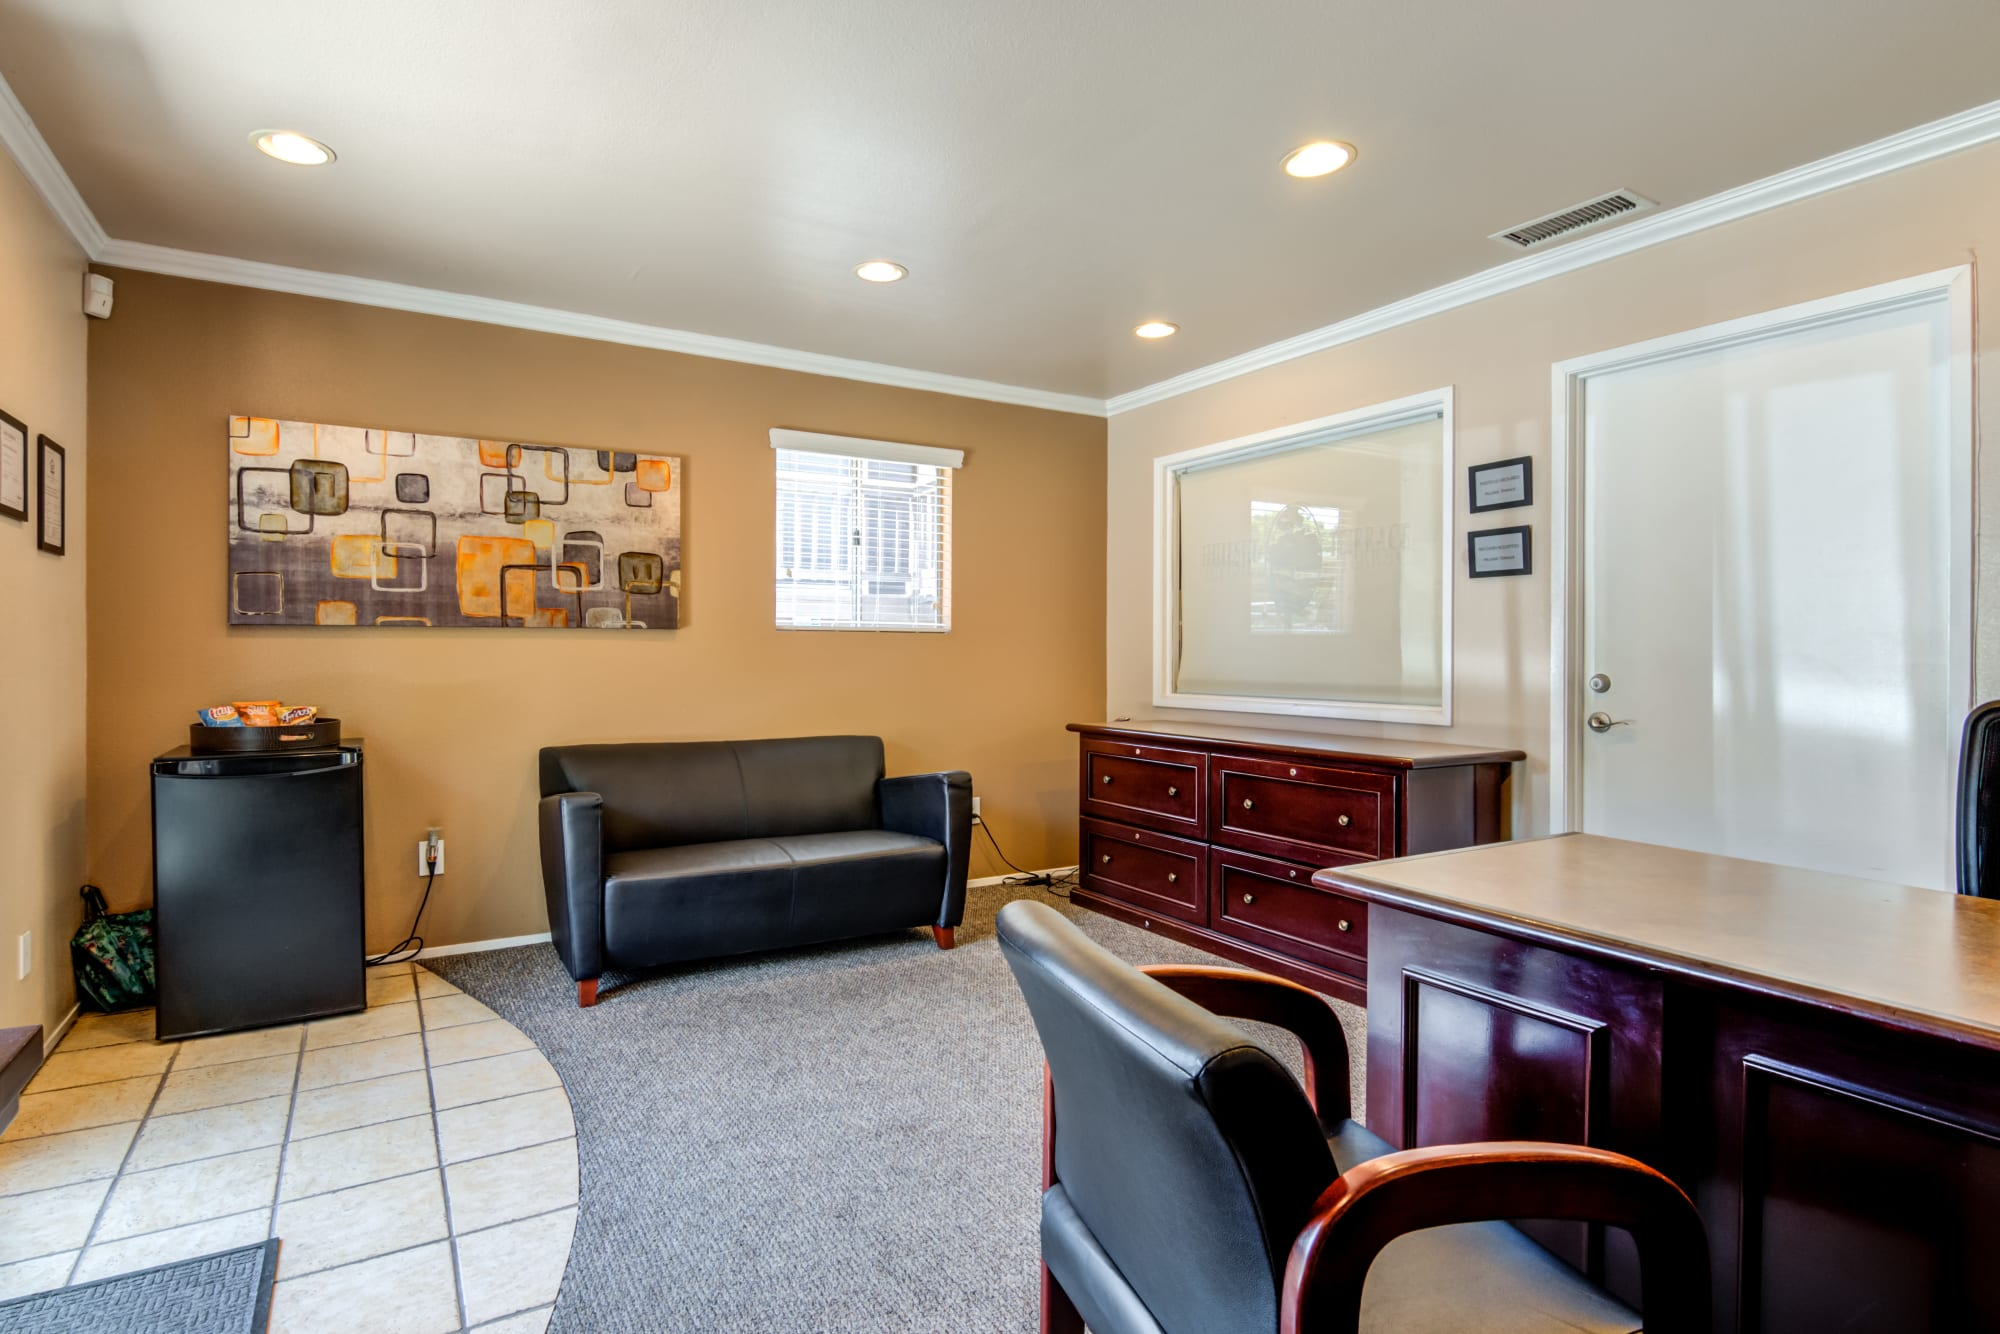 The interior of the leasing office at Hillside Terrace Apartments in Lemon Grove, California